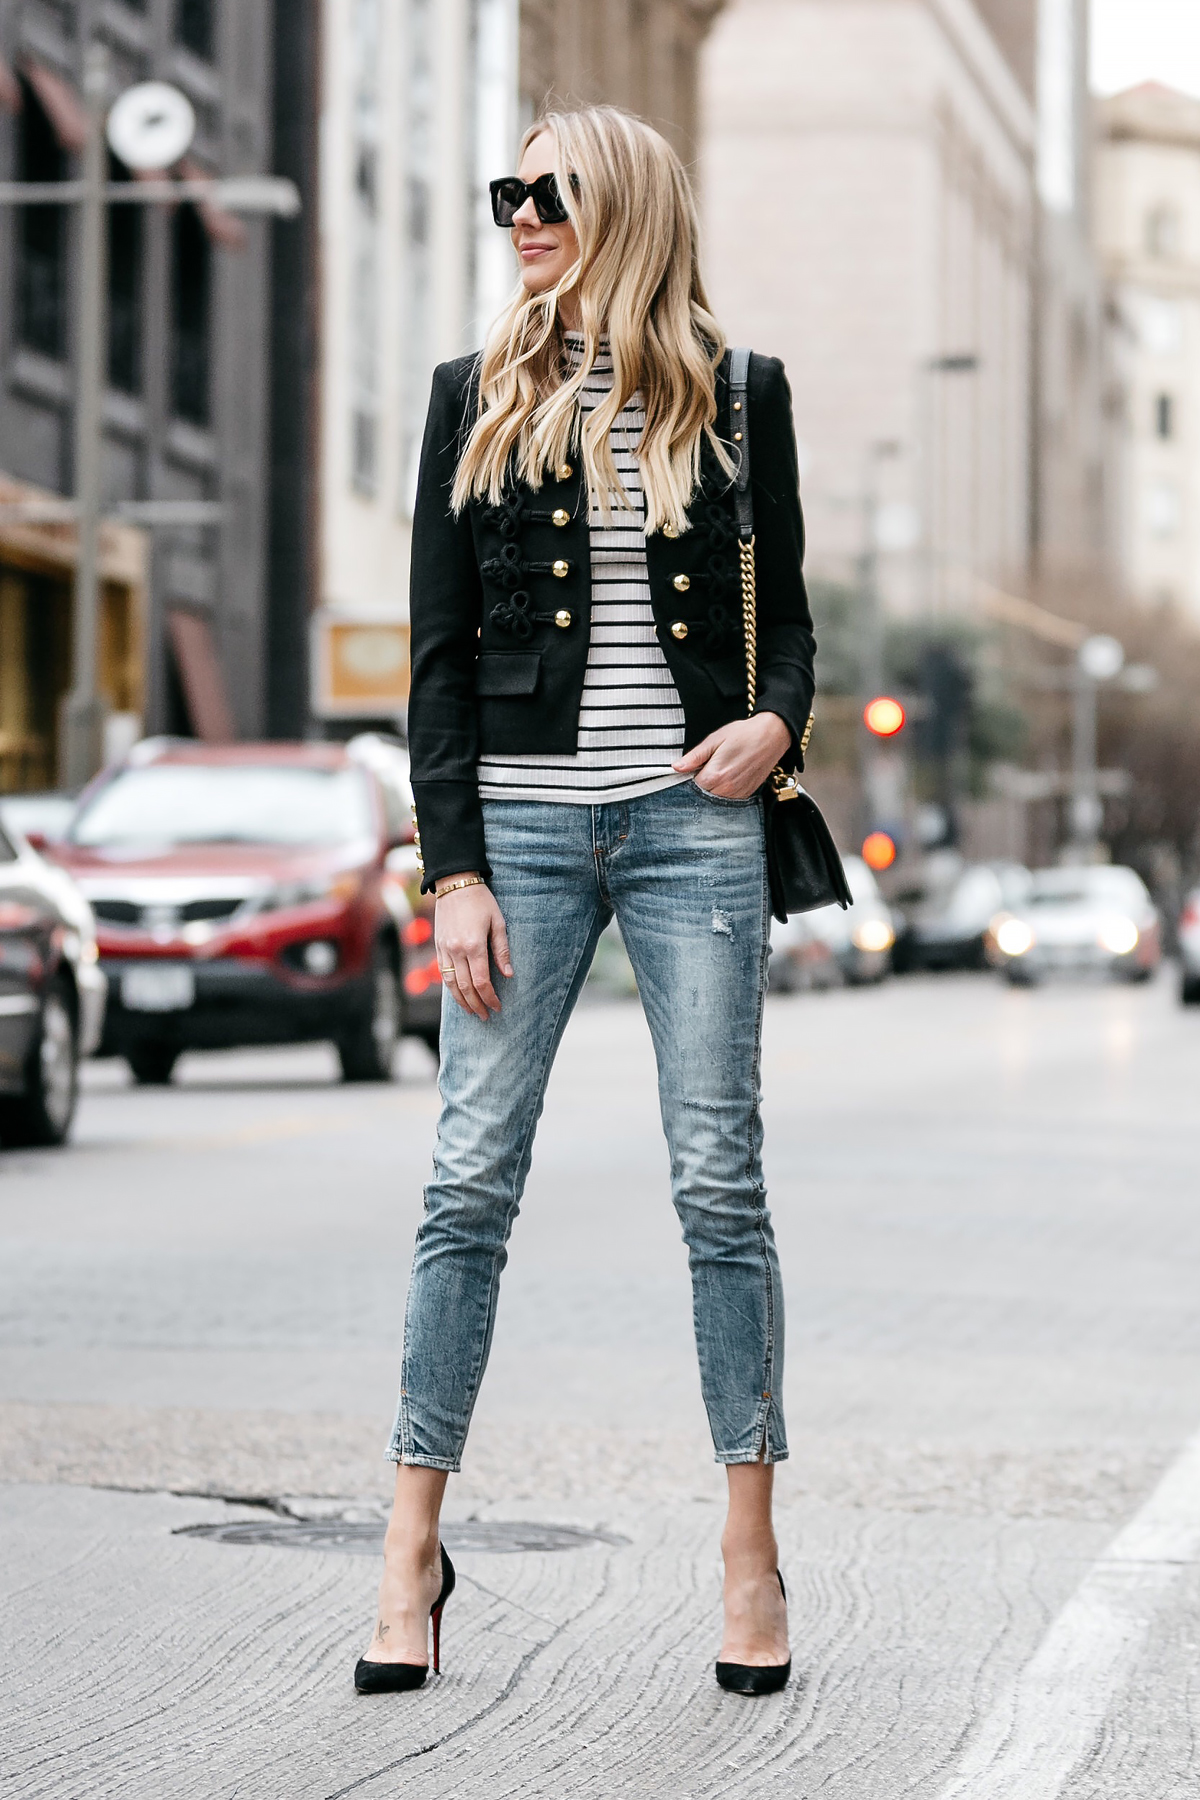 Blonde Woman Wearing Veronica Beard June Band Jacket Black White Striped Turtleneck Nordstrom Denim Skinny Jeans Christian Louboutin Black Pumps Fashion Jackson Dallas Blogger Fashion Blogger Street Style